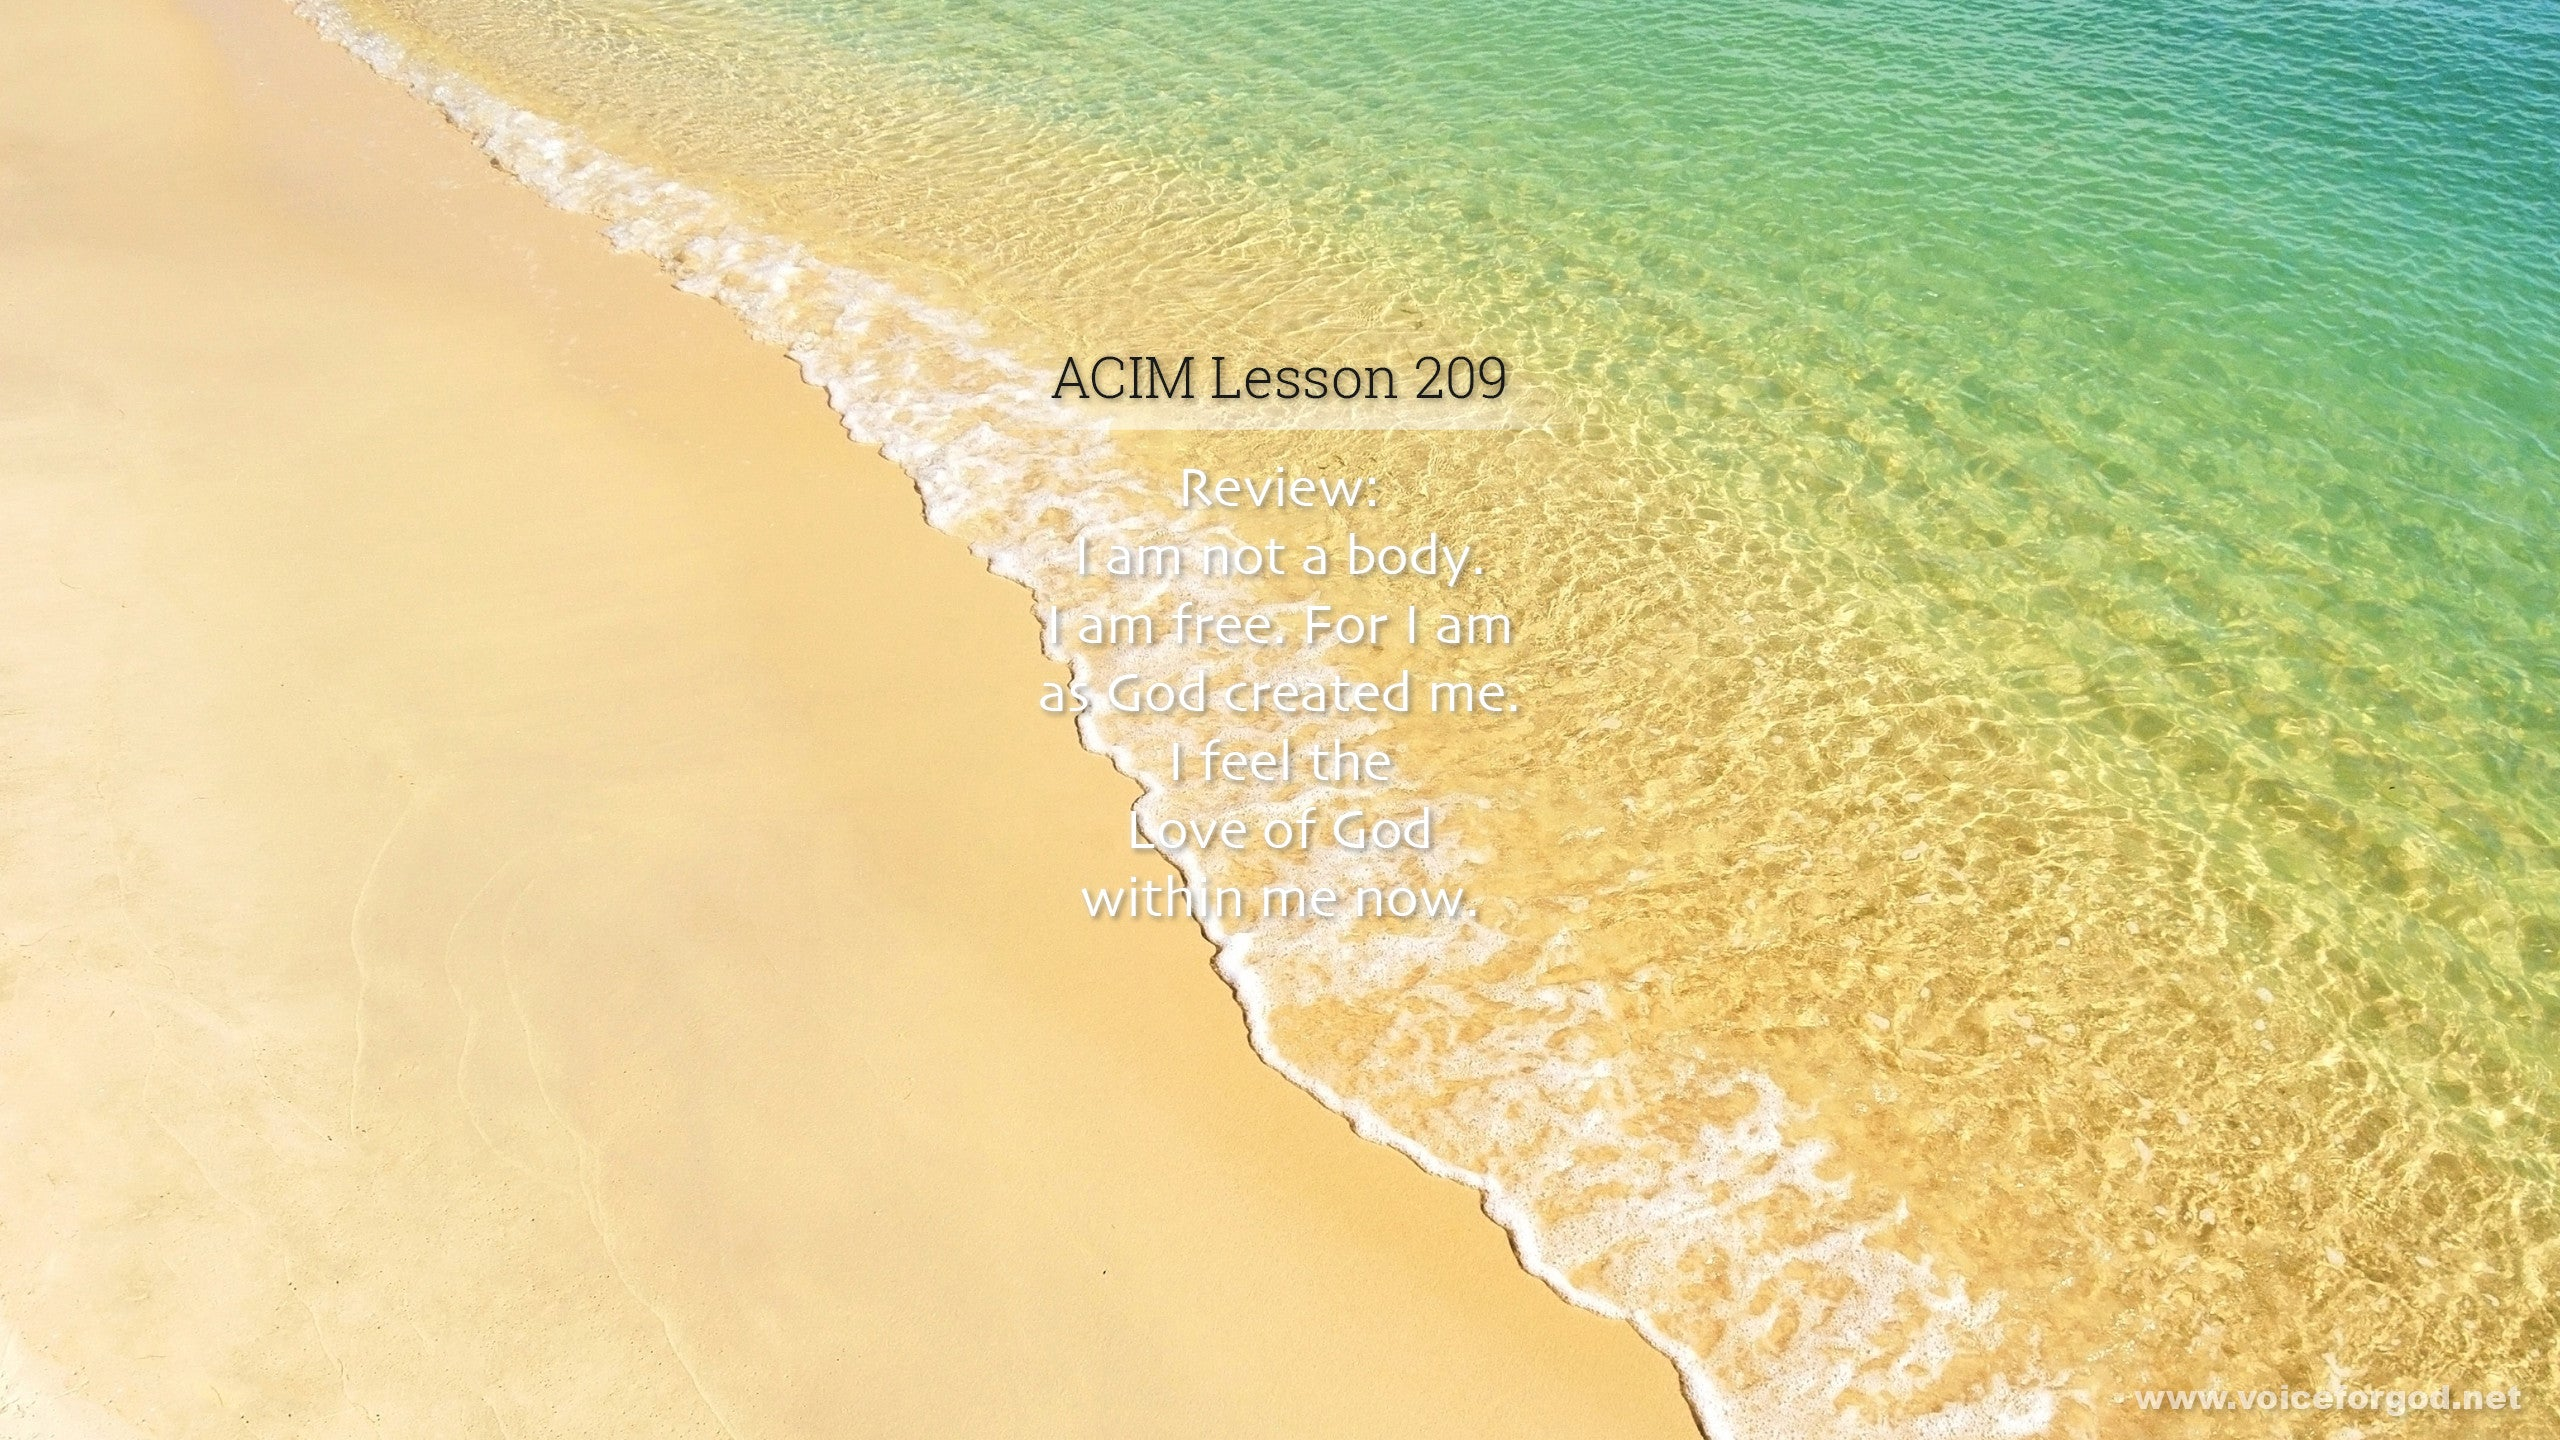 ACIM Lesson 209 - A Course in Miracles Workbook Lesson 209